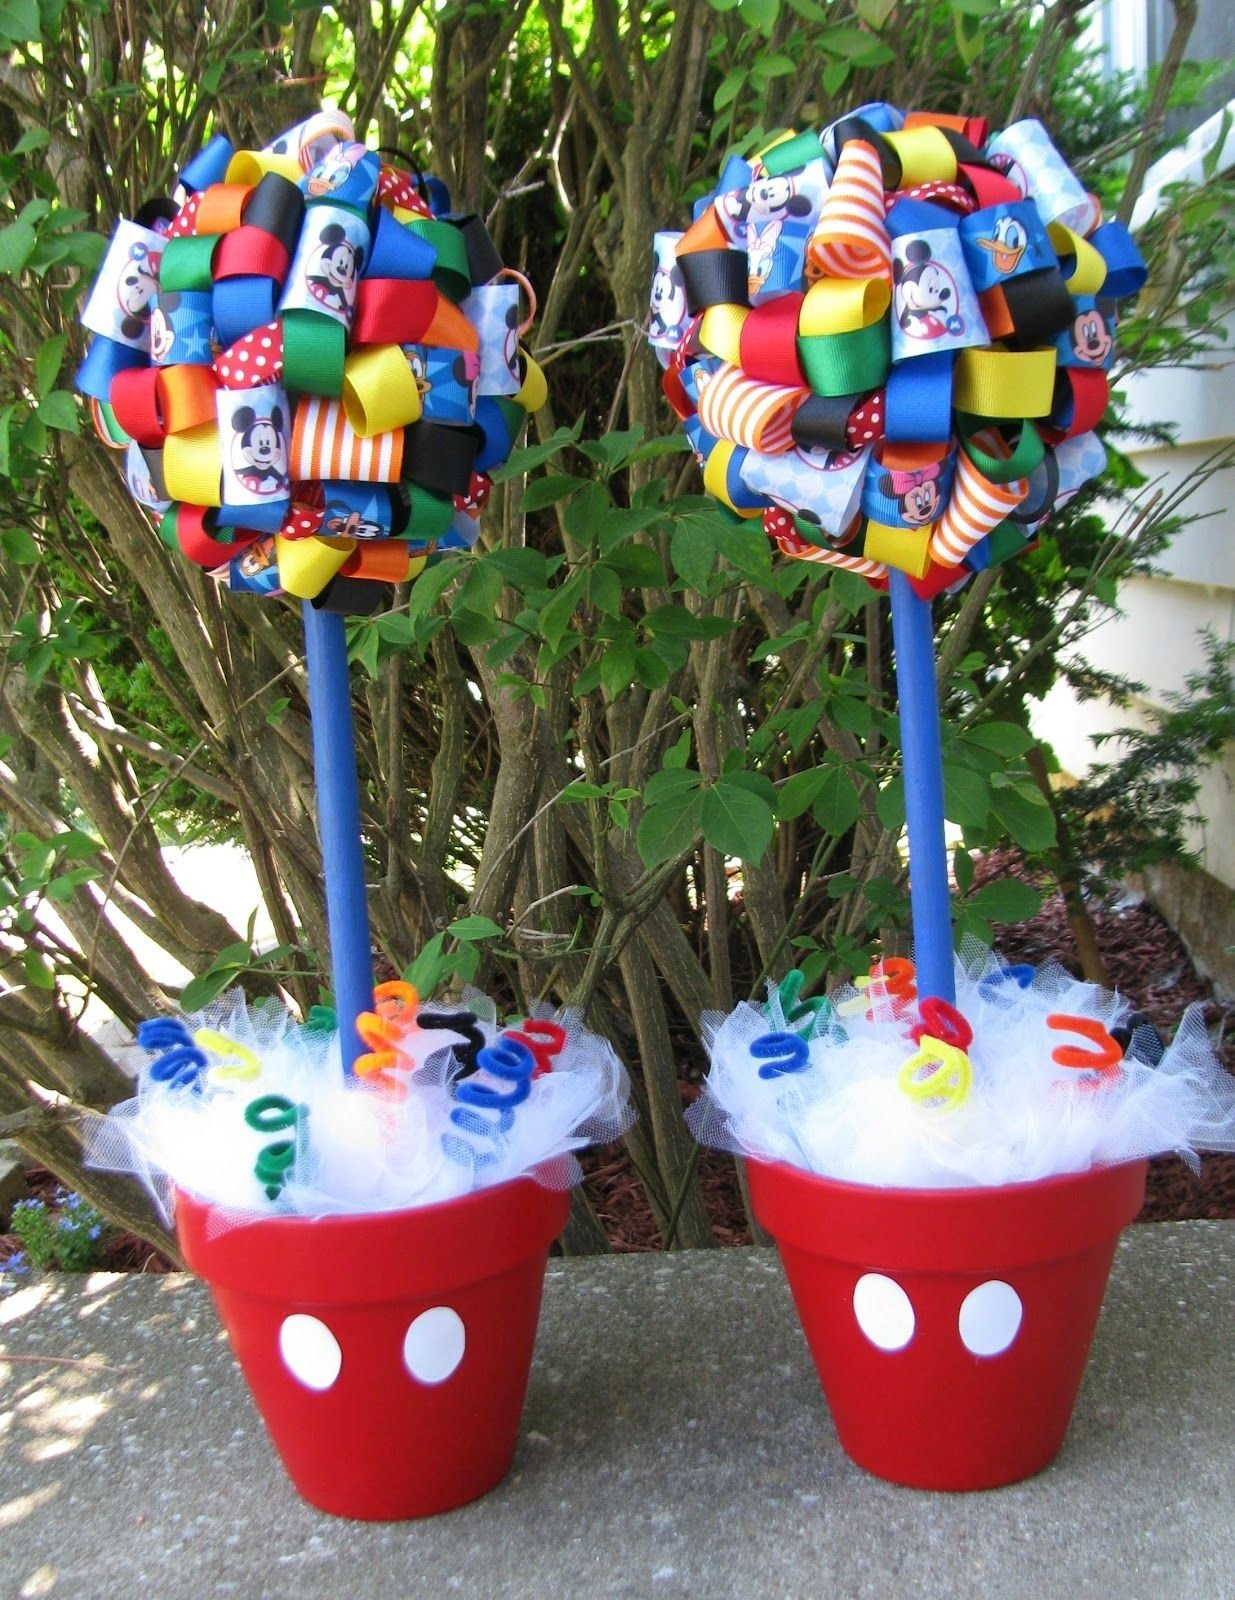 10 Attractive Mickey Mouse Clubhouse Birthday Party Ideas 2 Year Old Img 8707 1235xst